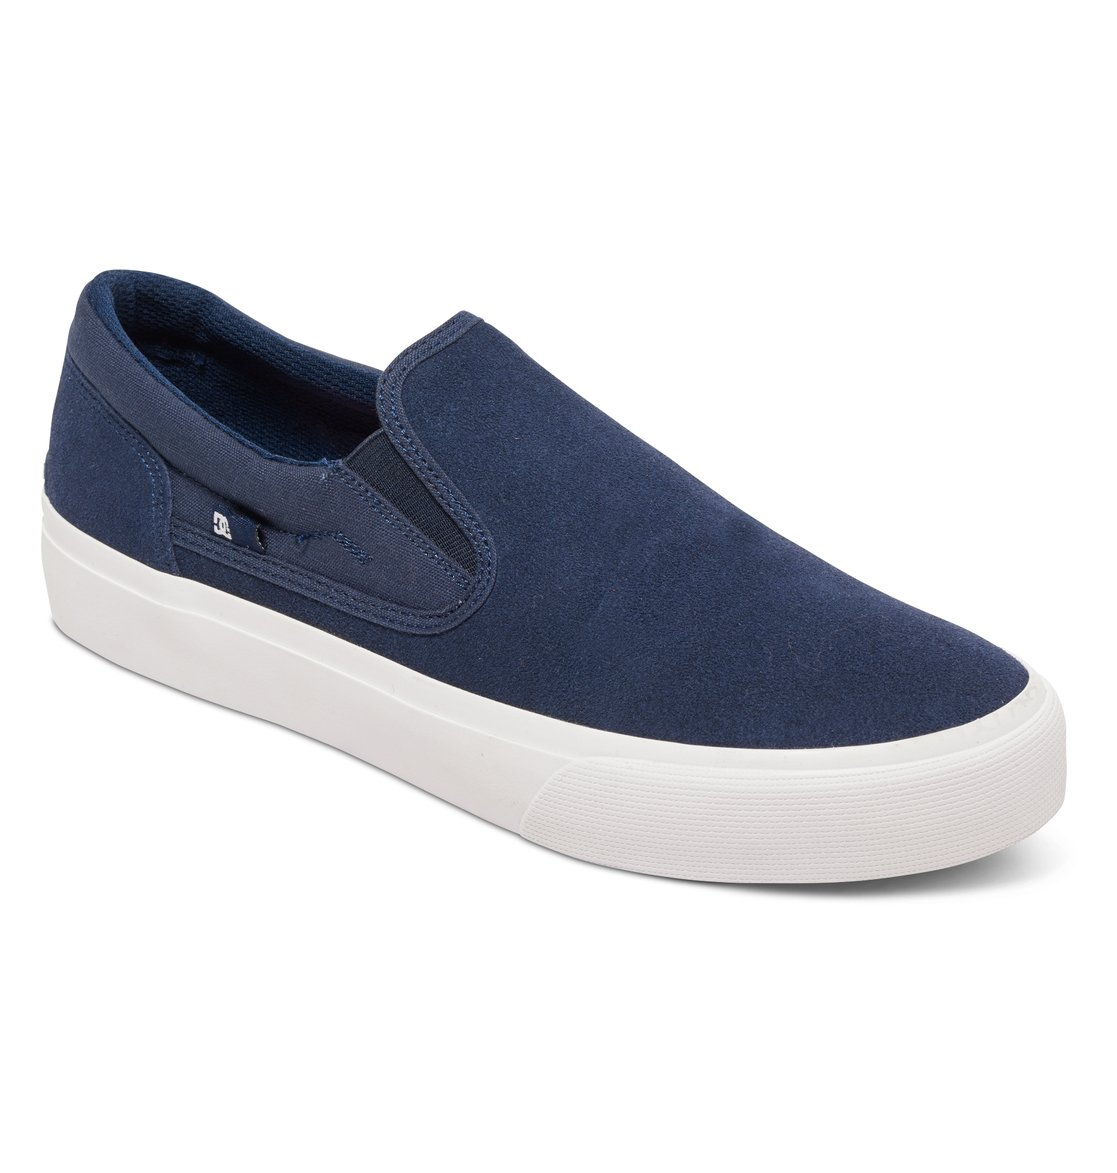 DC Men's Trase SD Slip-On Sneakers Blue Leather Suede 4.5 D